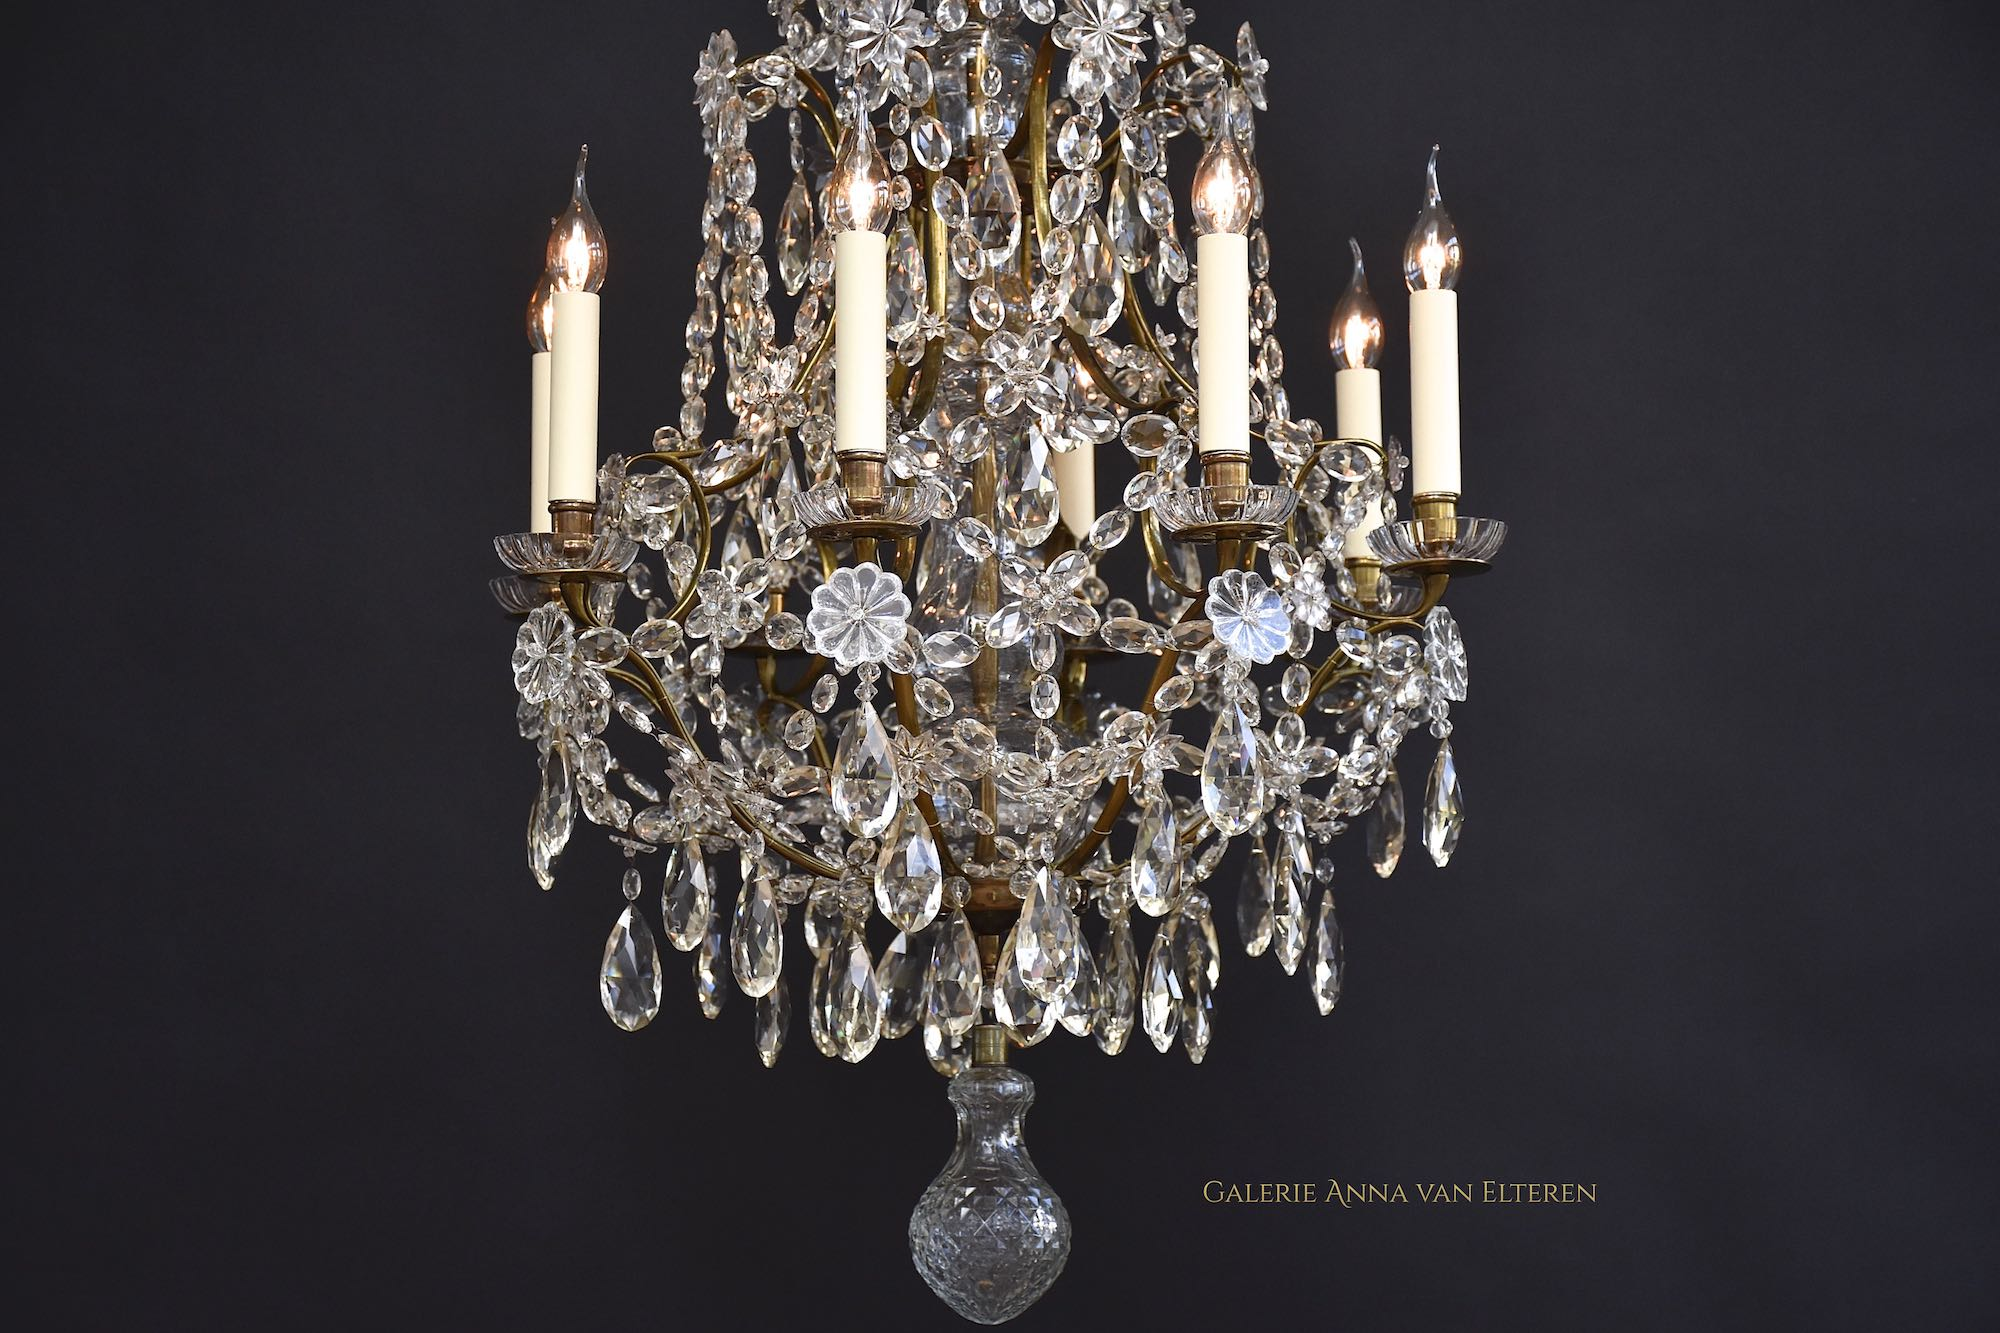 Large 19th c. Rococo style antique chandelier